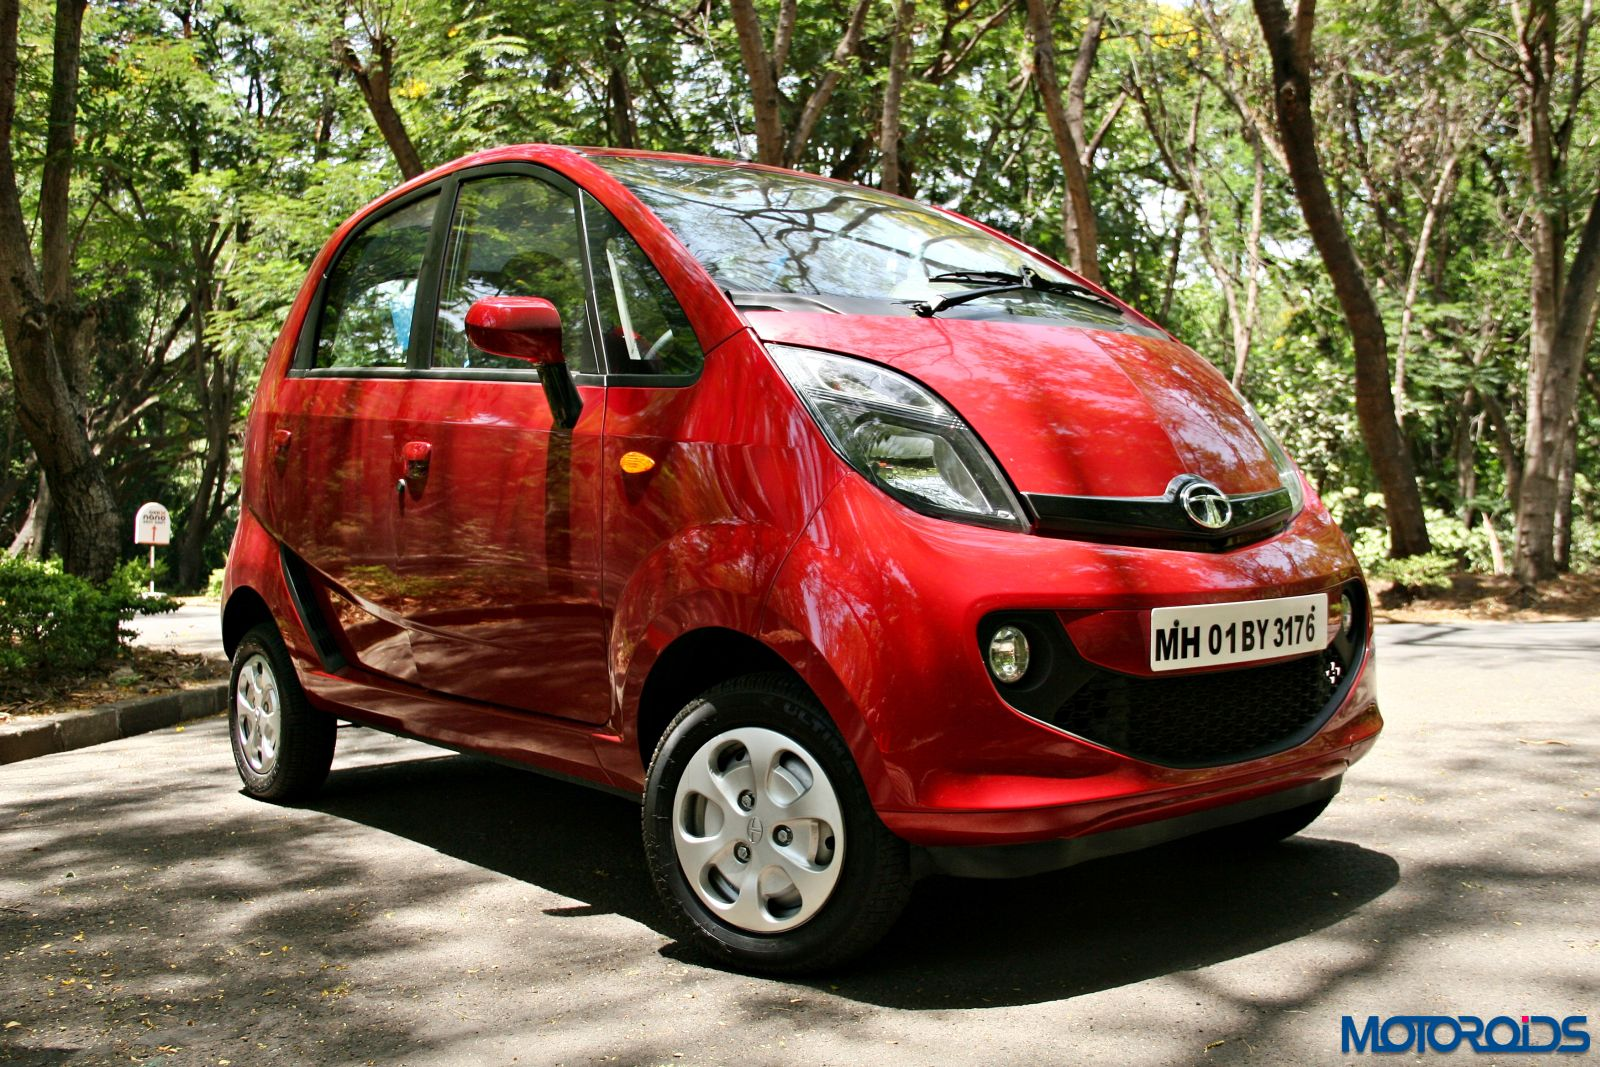 Tata Genx Nano: Tata Motors Plans To Domestically Produce AMT Kits To